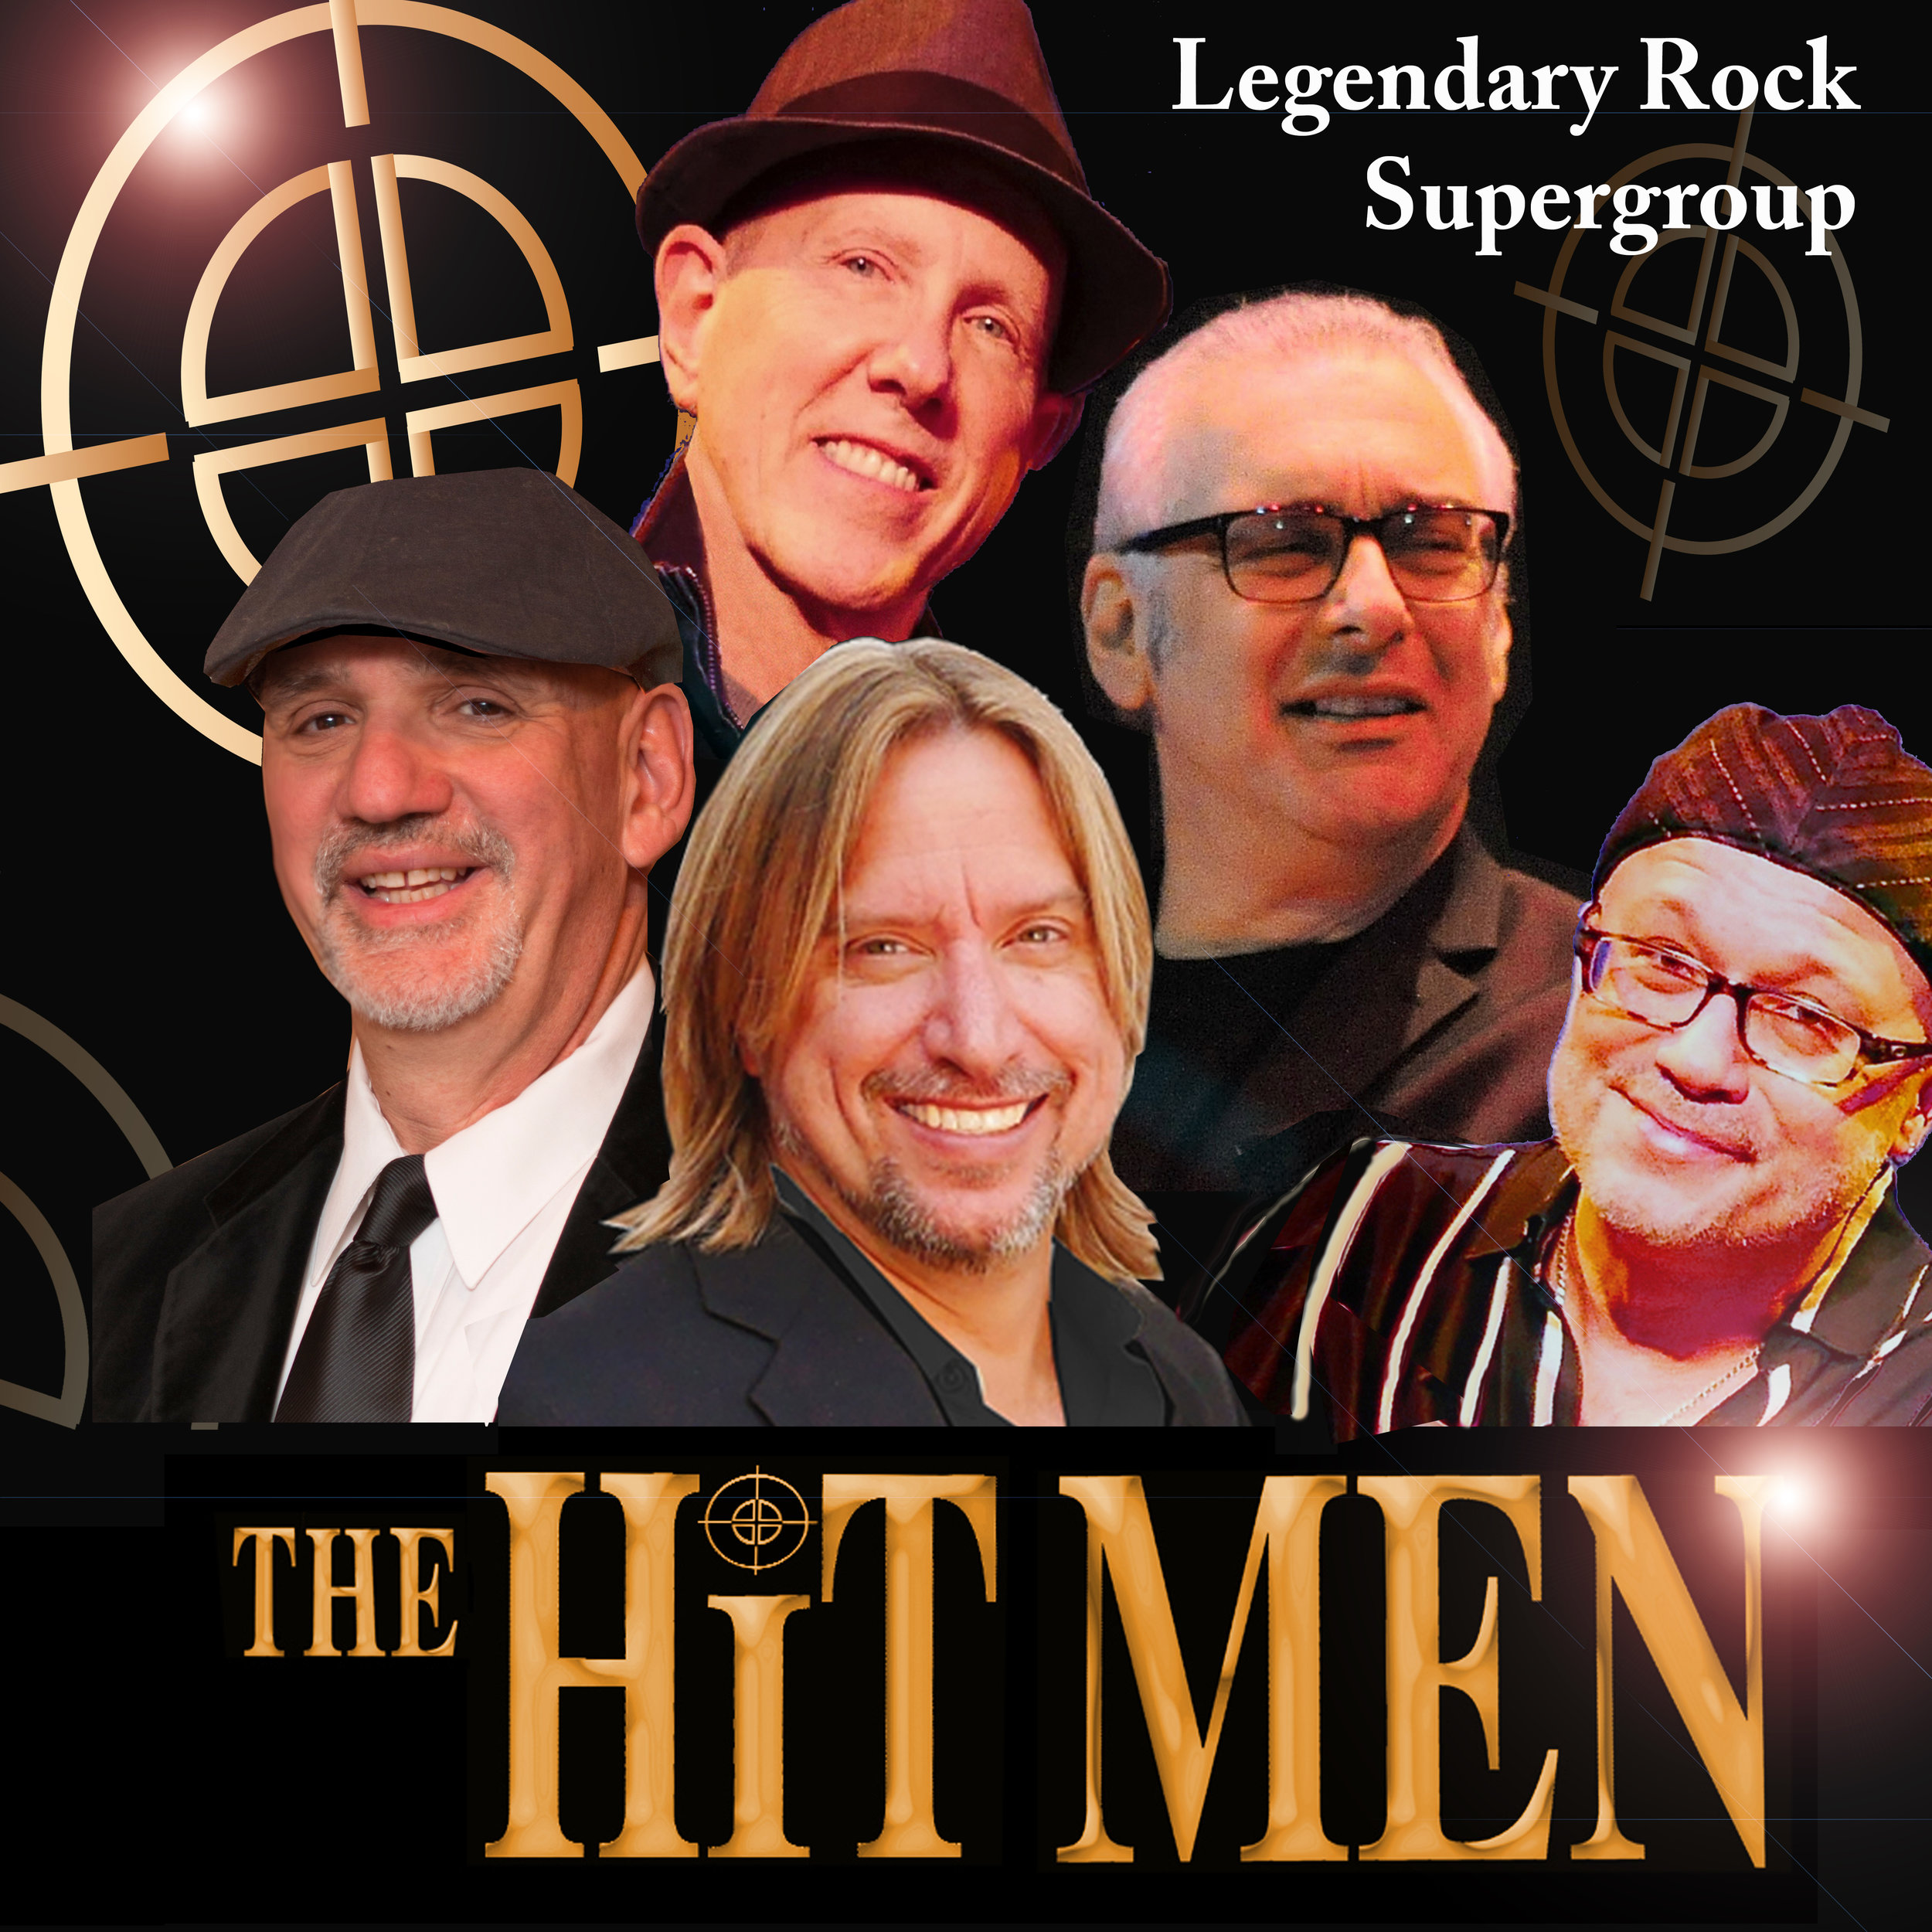 THE HIT MEN: LEGENDARY ROCK SUPERGROUP